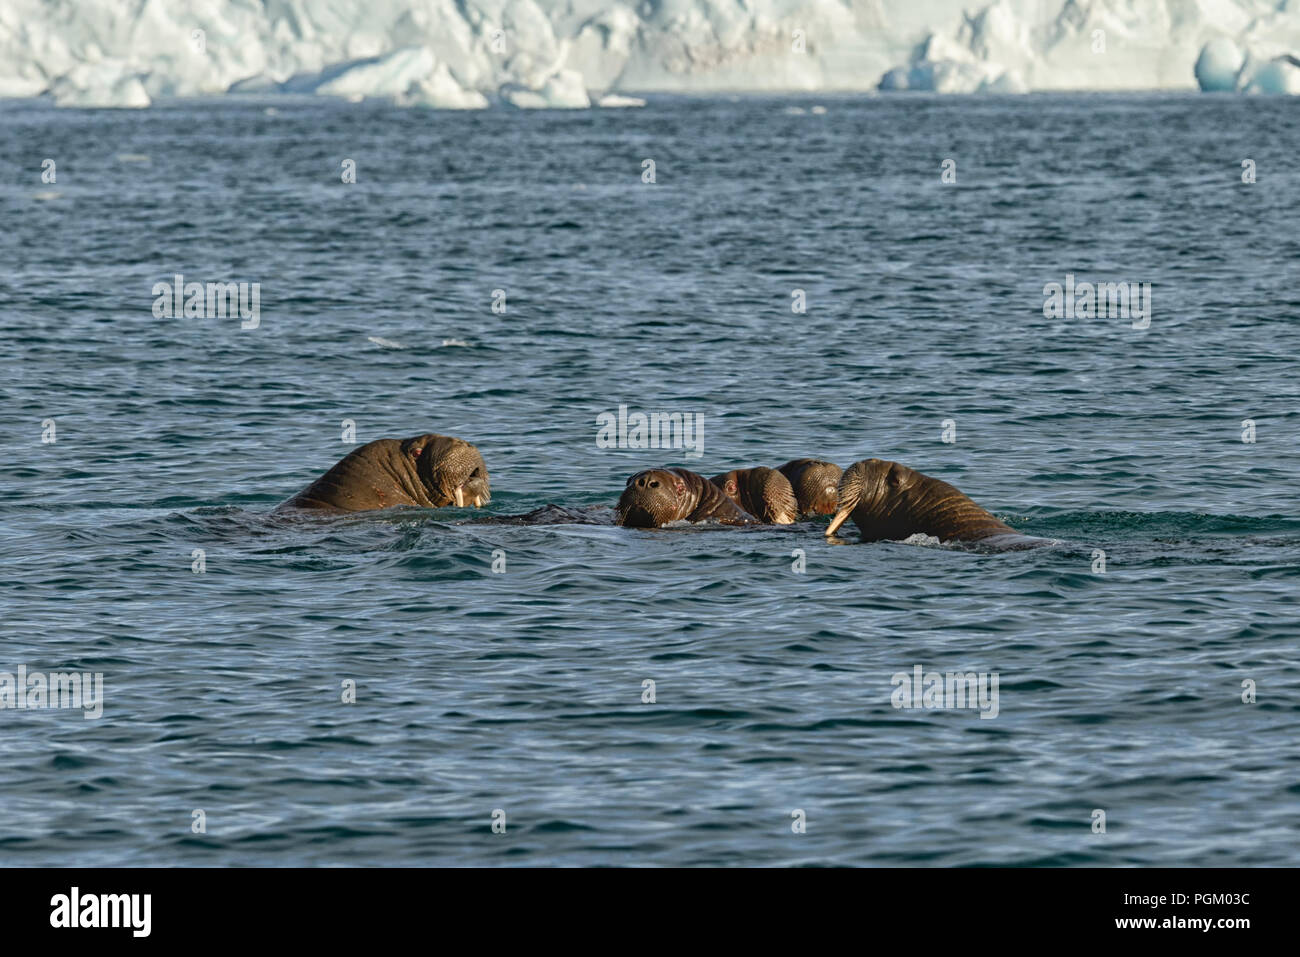 Group of walruses swimming in sea in front of Bråsvellbreen, Austfonna, Nordaustlandet, Svalbard Archipelago, Norway, 2017 - Stock Image